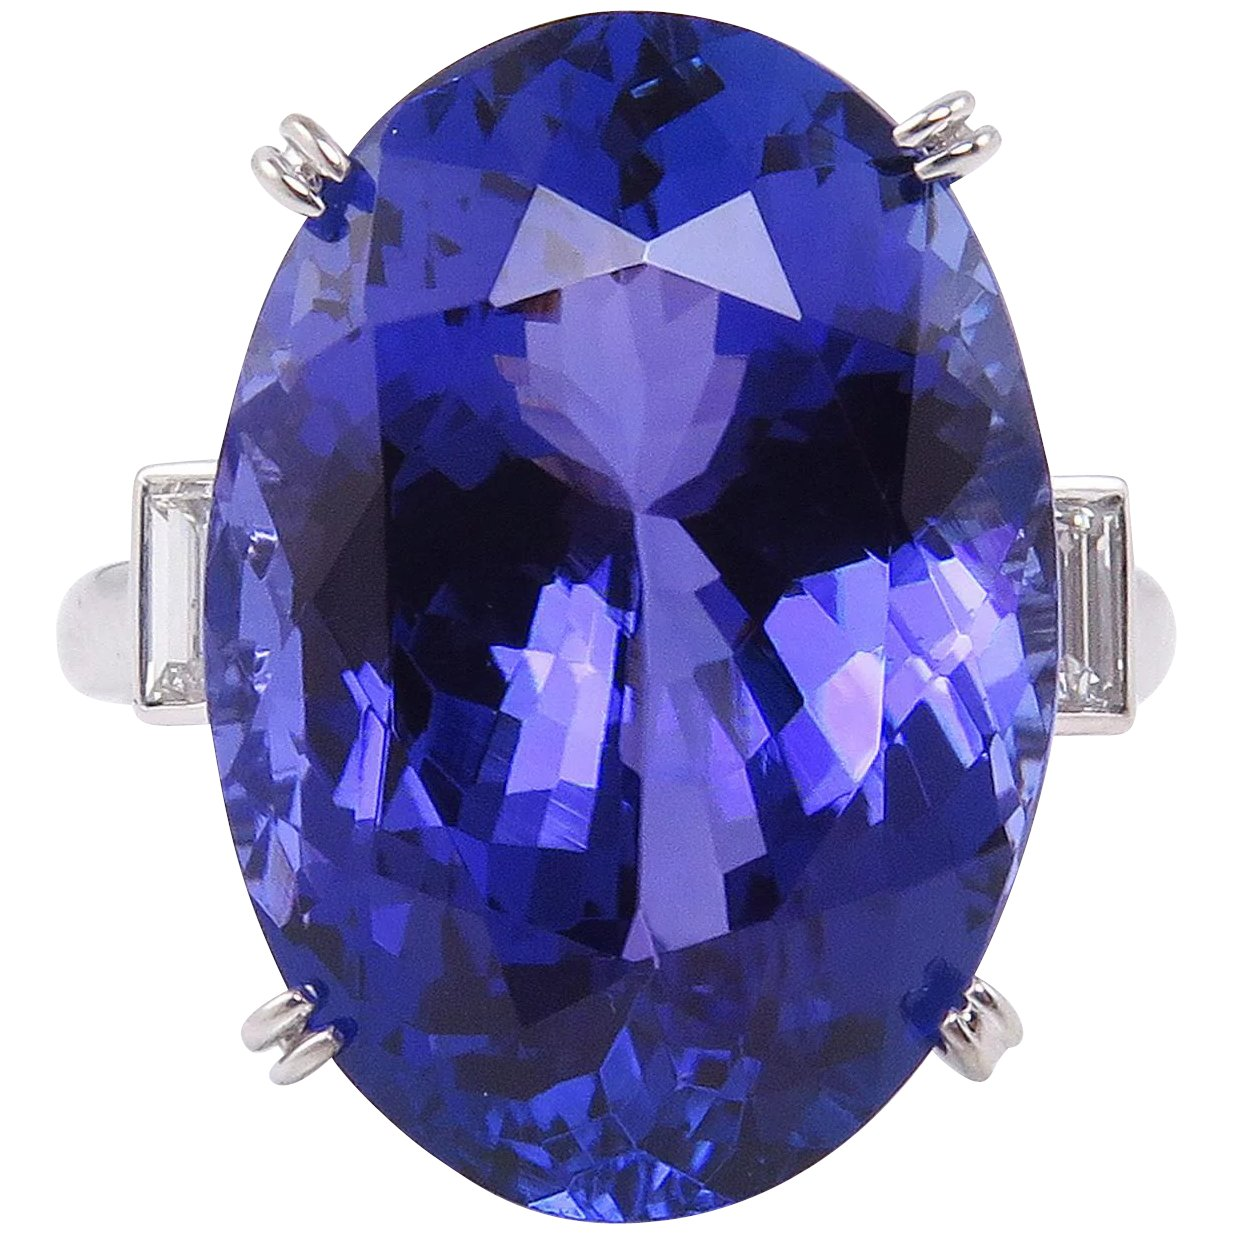 id certified necklaces at and upload master tanzanite j unique gia cut pendant mobile diamond trapezium jewelry sale for